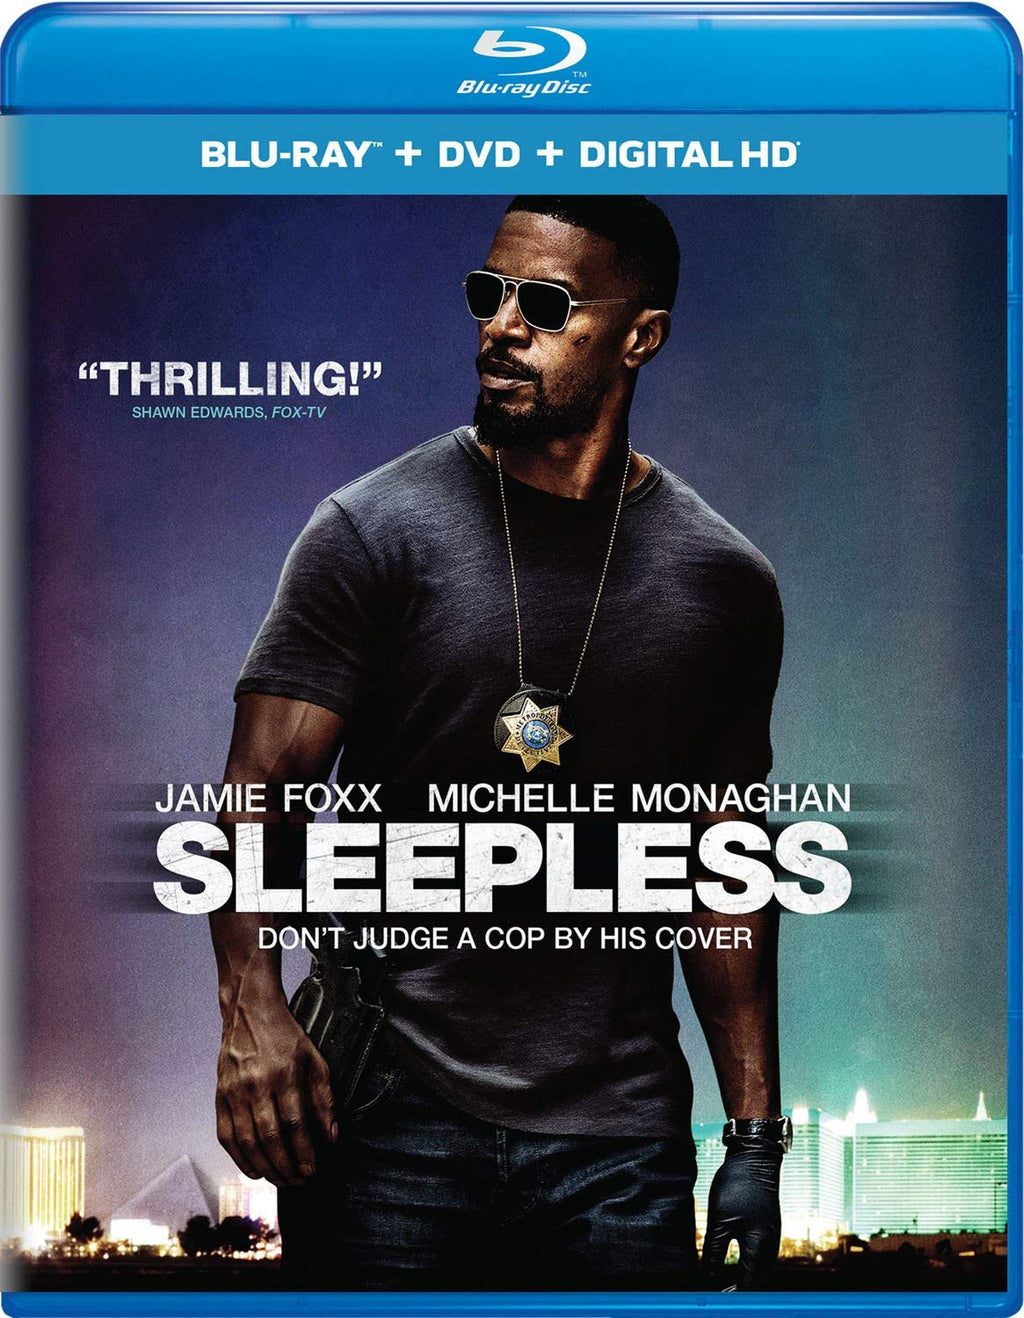 Sleepless Blu-ray + DVD + Digital HD